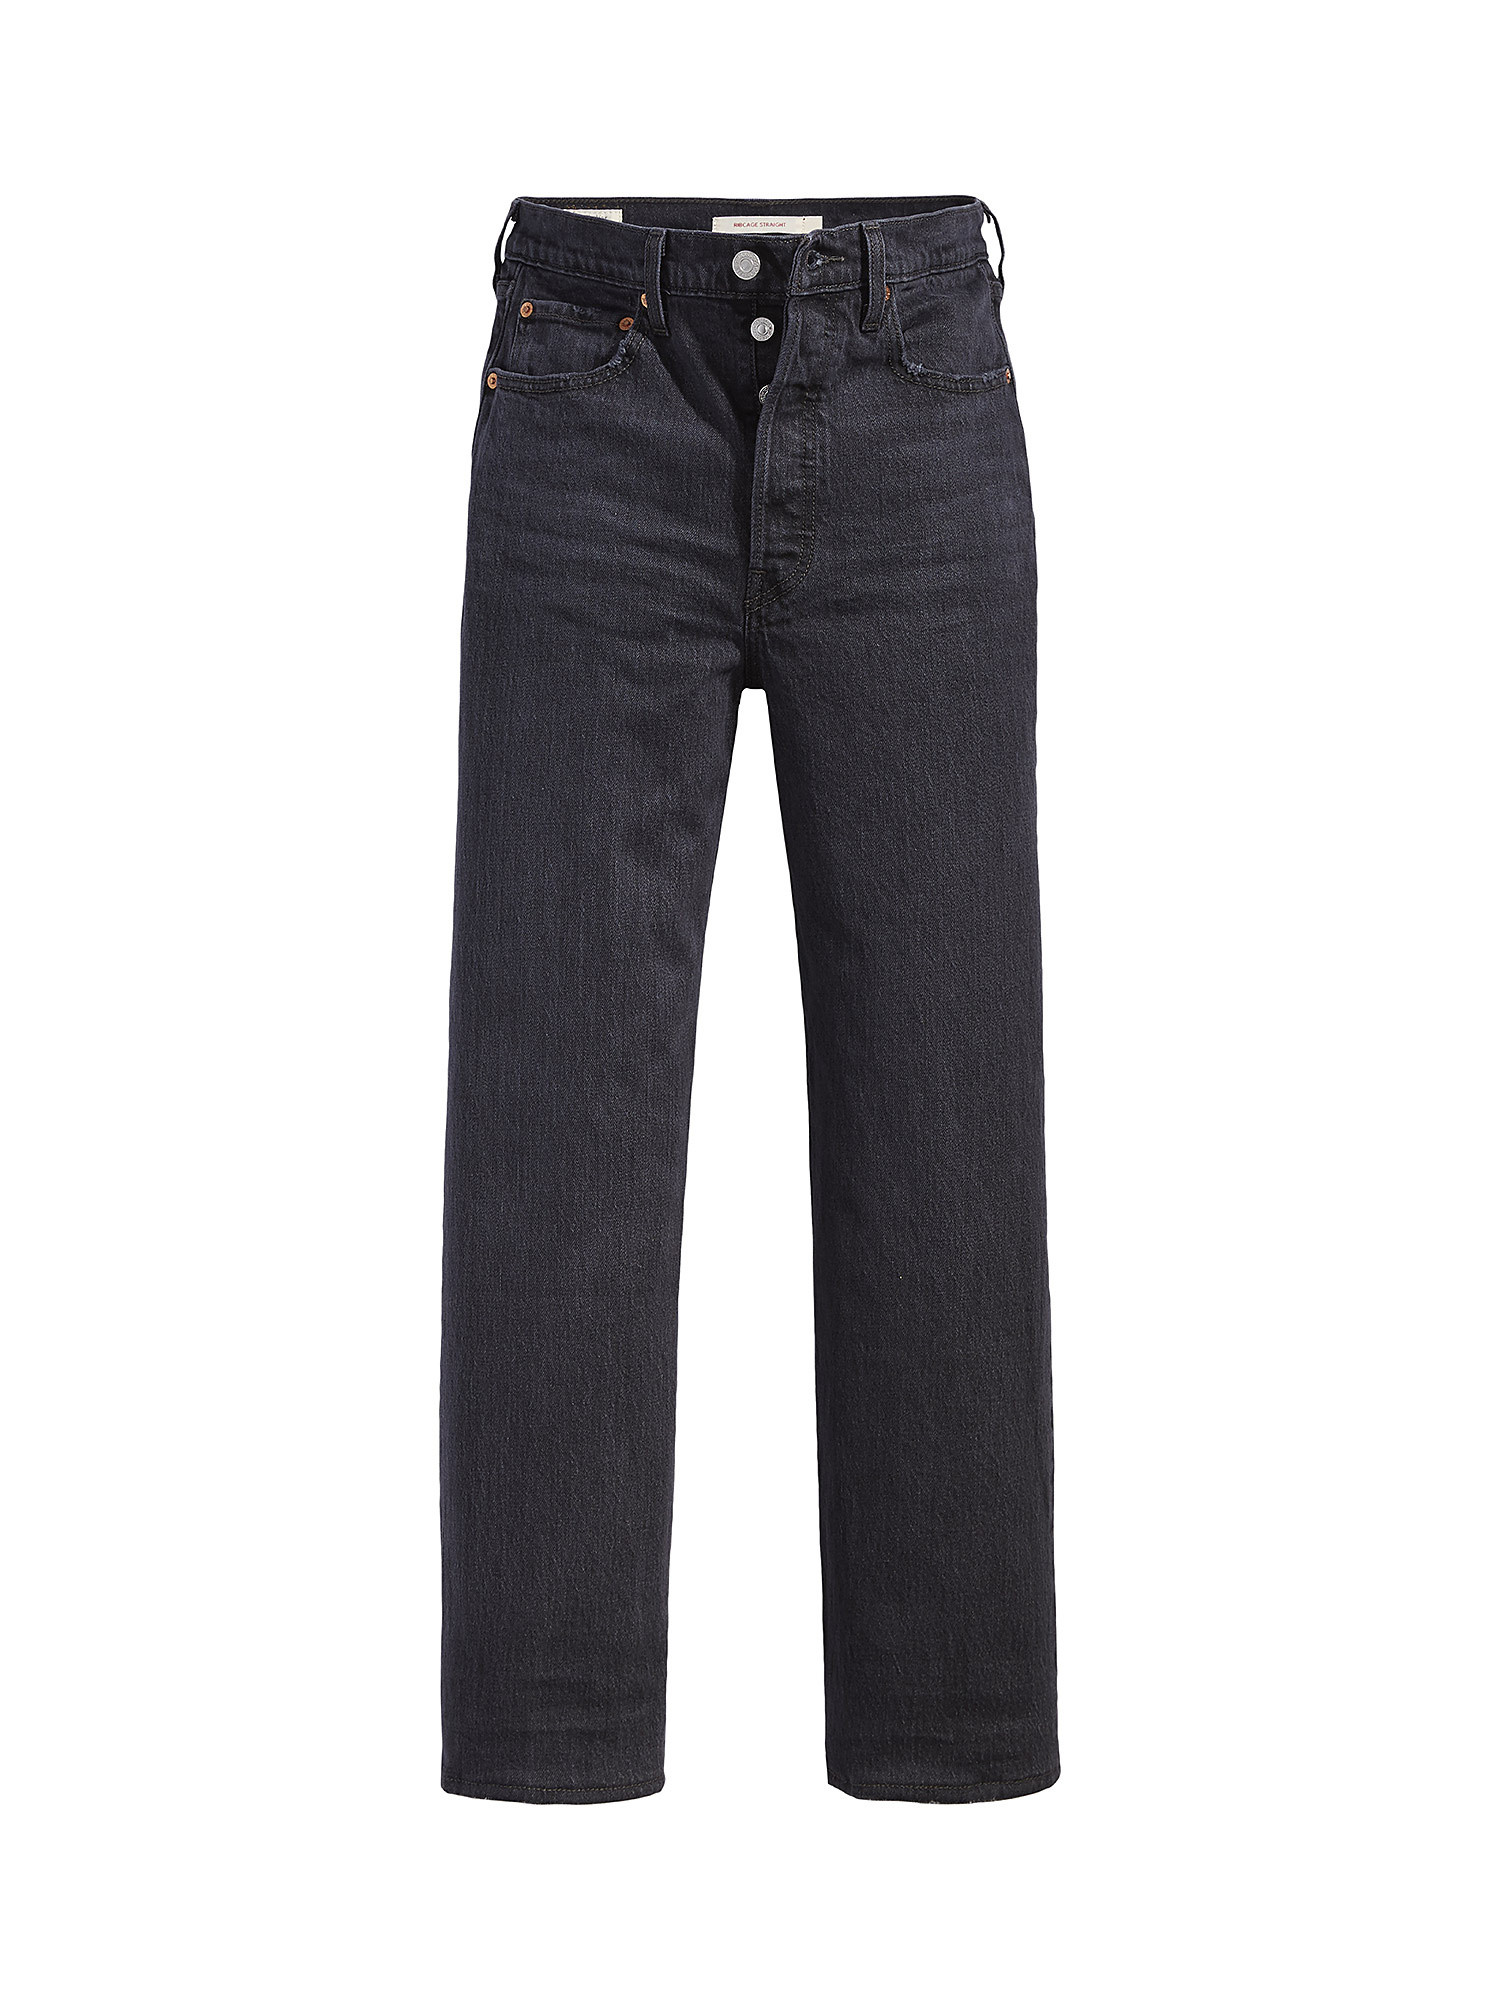 Jeans Ribcage Straight Ankle, Nero, large image number 0